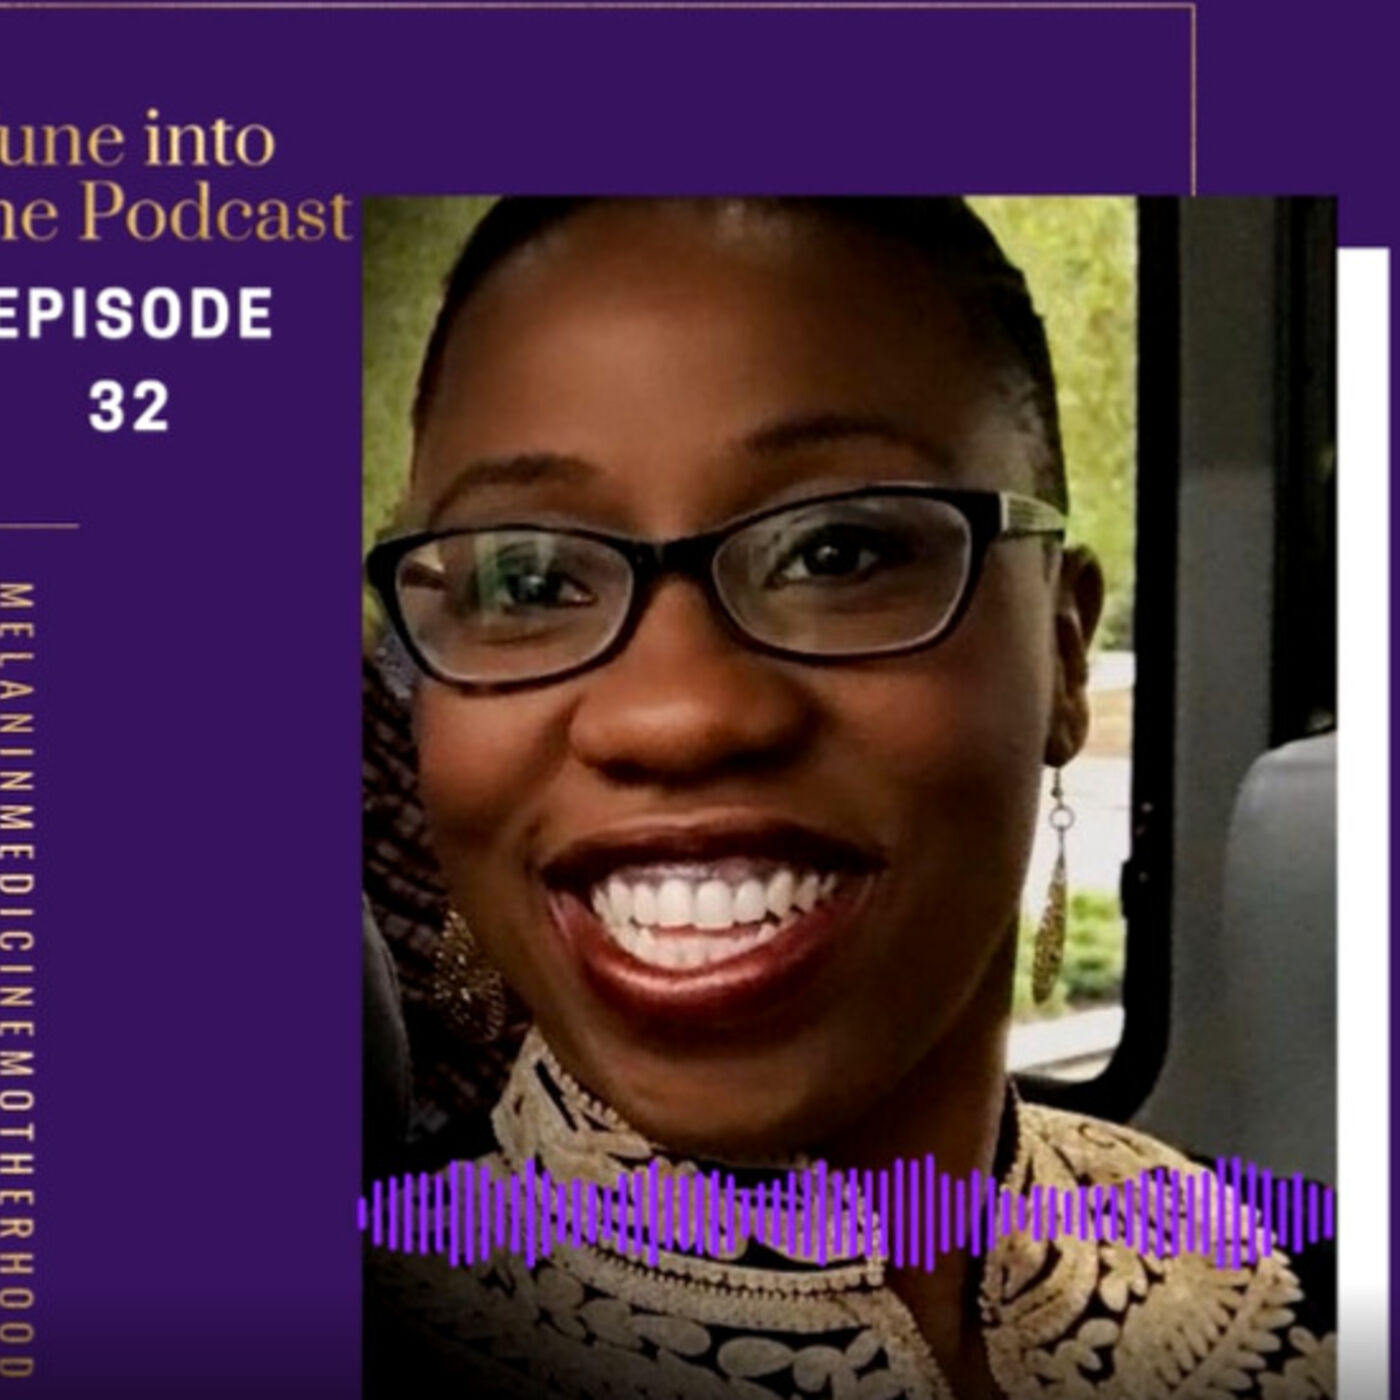 Episode 32: It's Time To Pivot Into Our Purpose: What Black Women Can Do